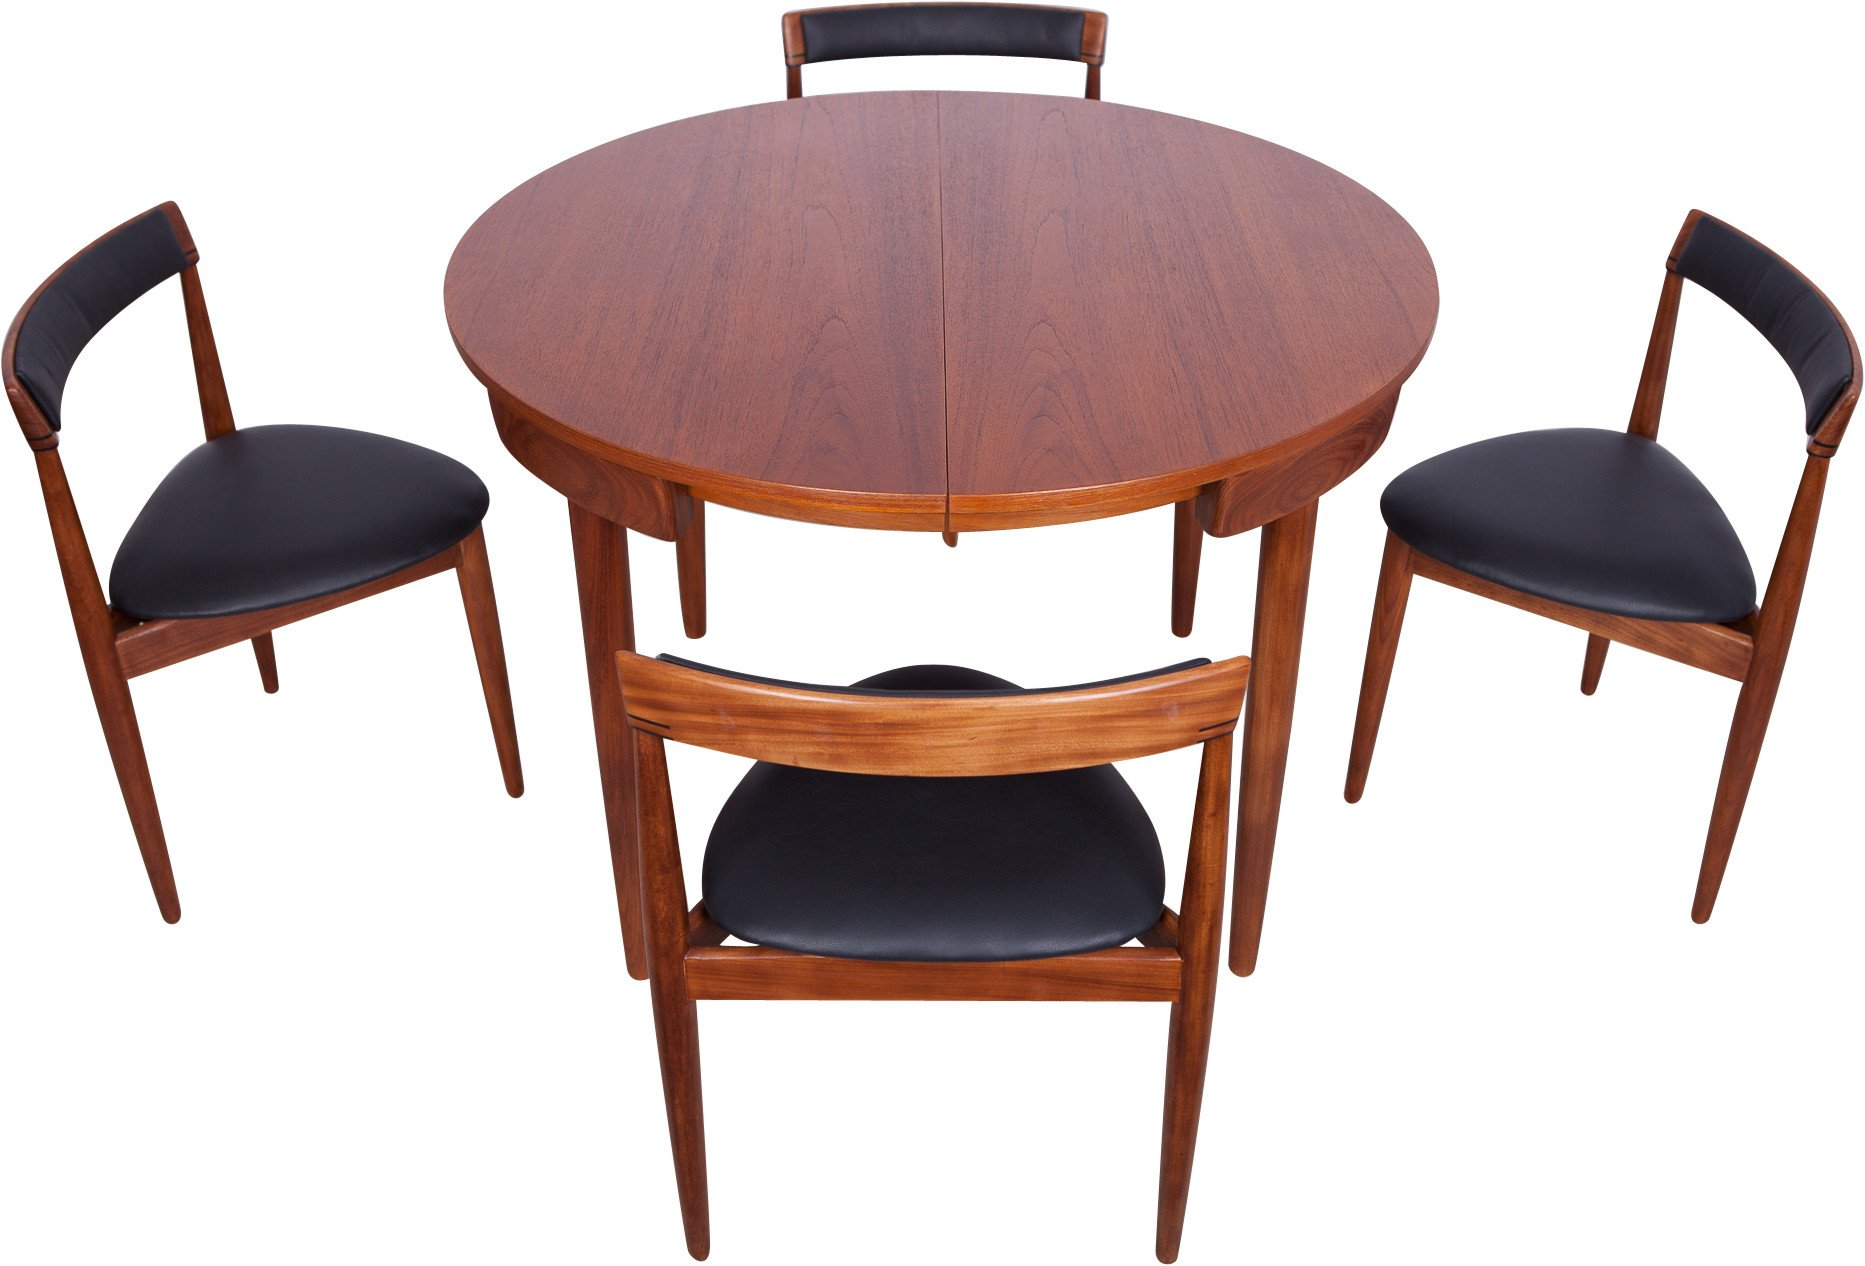 Set of Four Chairs and a Table by H. Olsen, Frem Røjle, Denmark,1950s